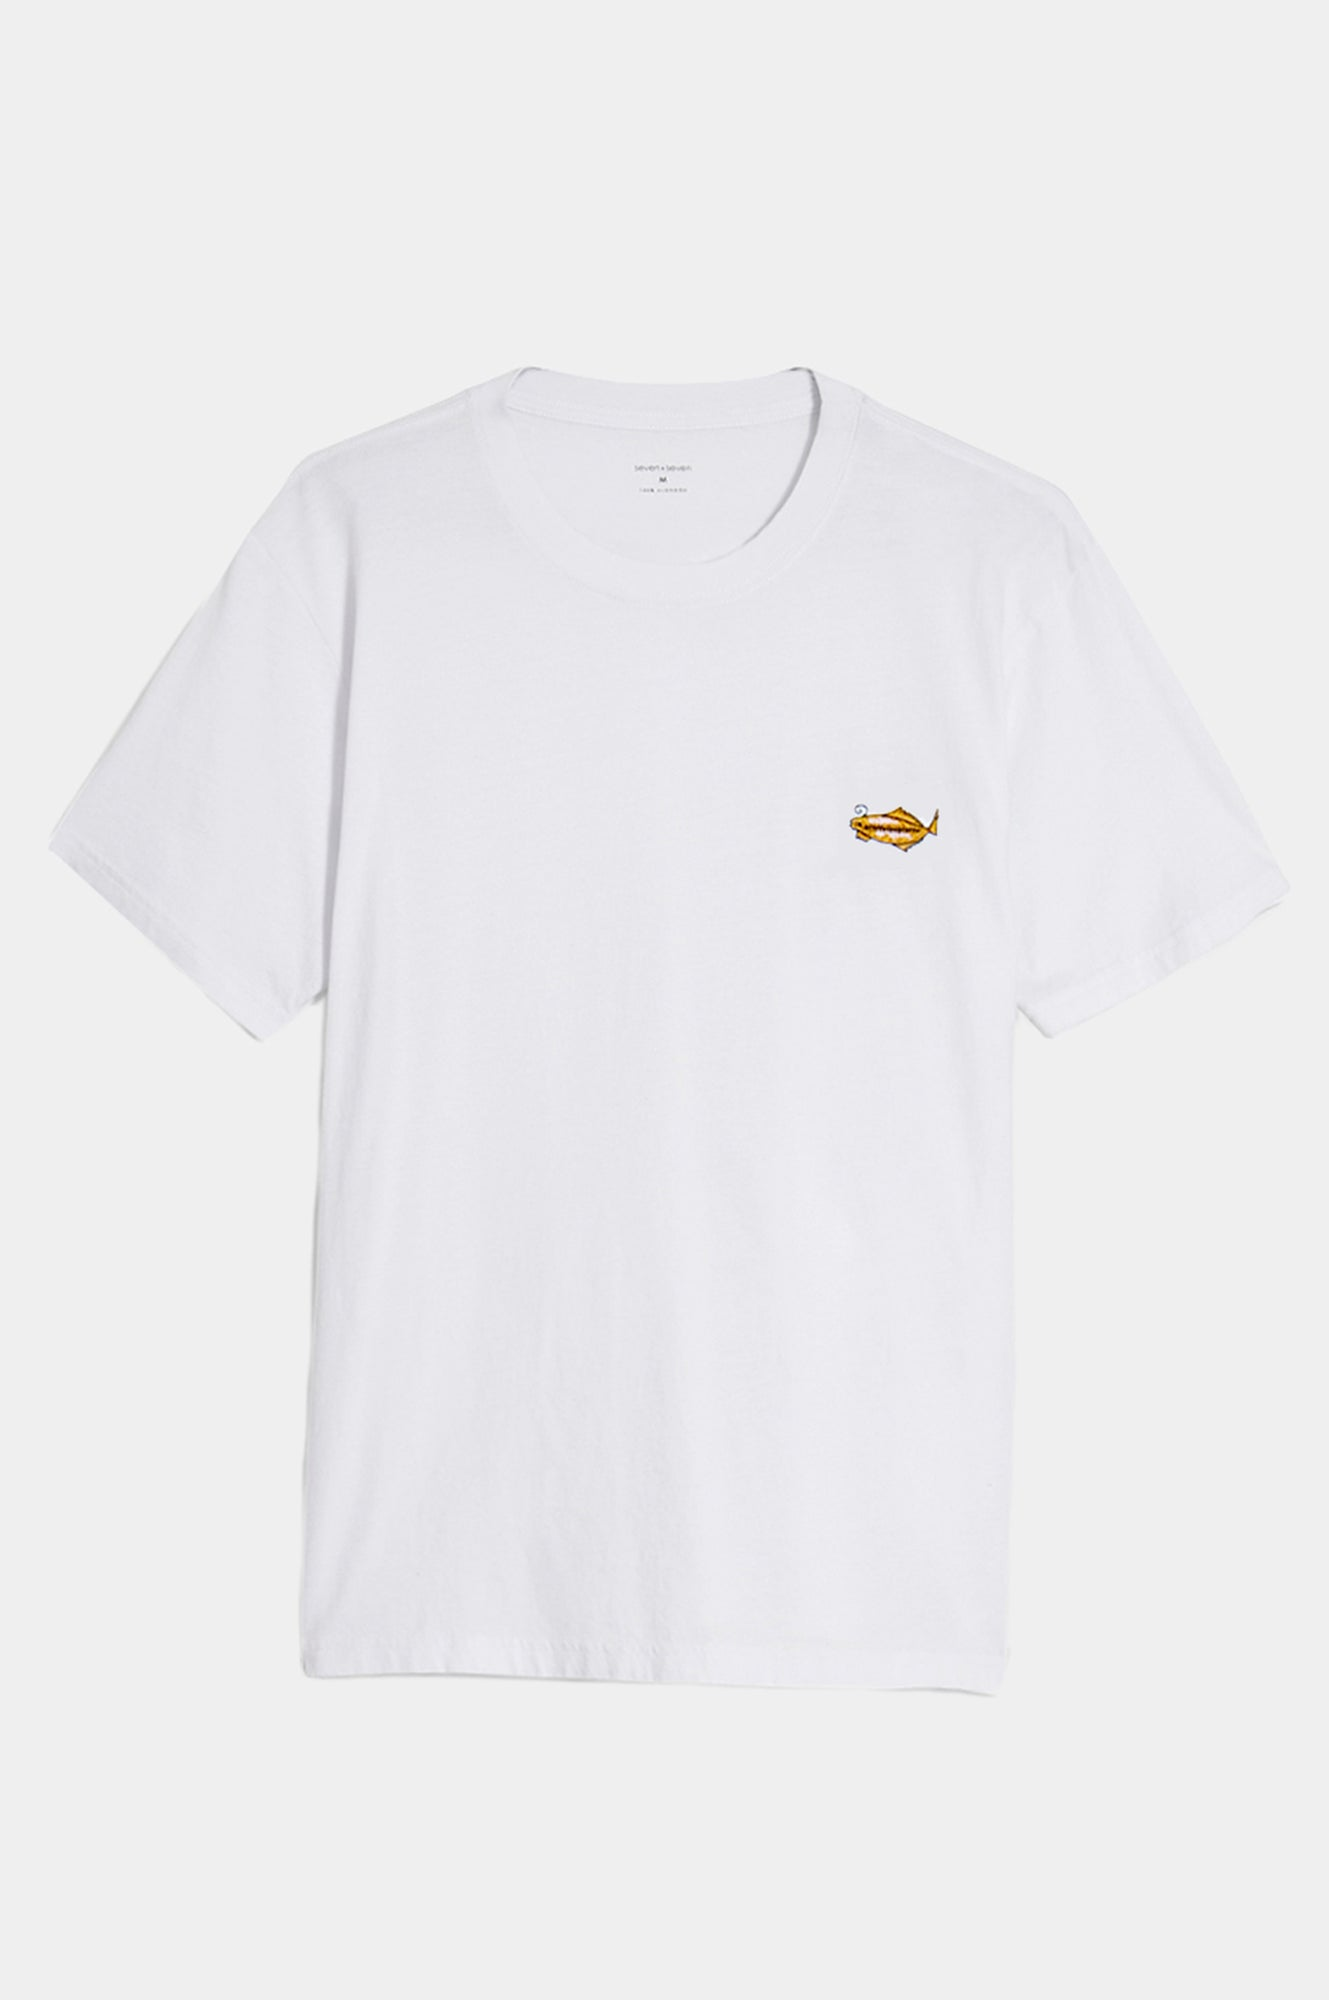 FISH EMBROIDERY T-SHIRT - Esteban Cortazar